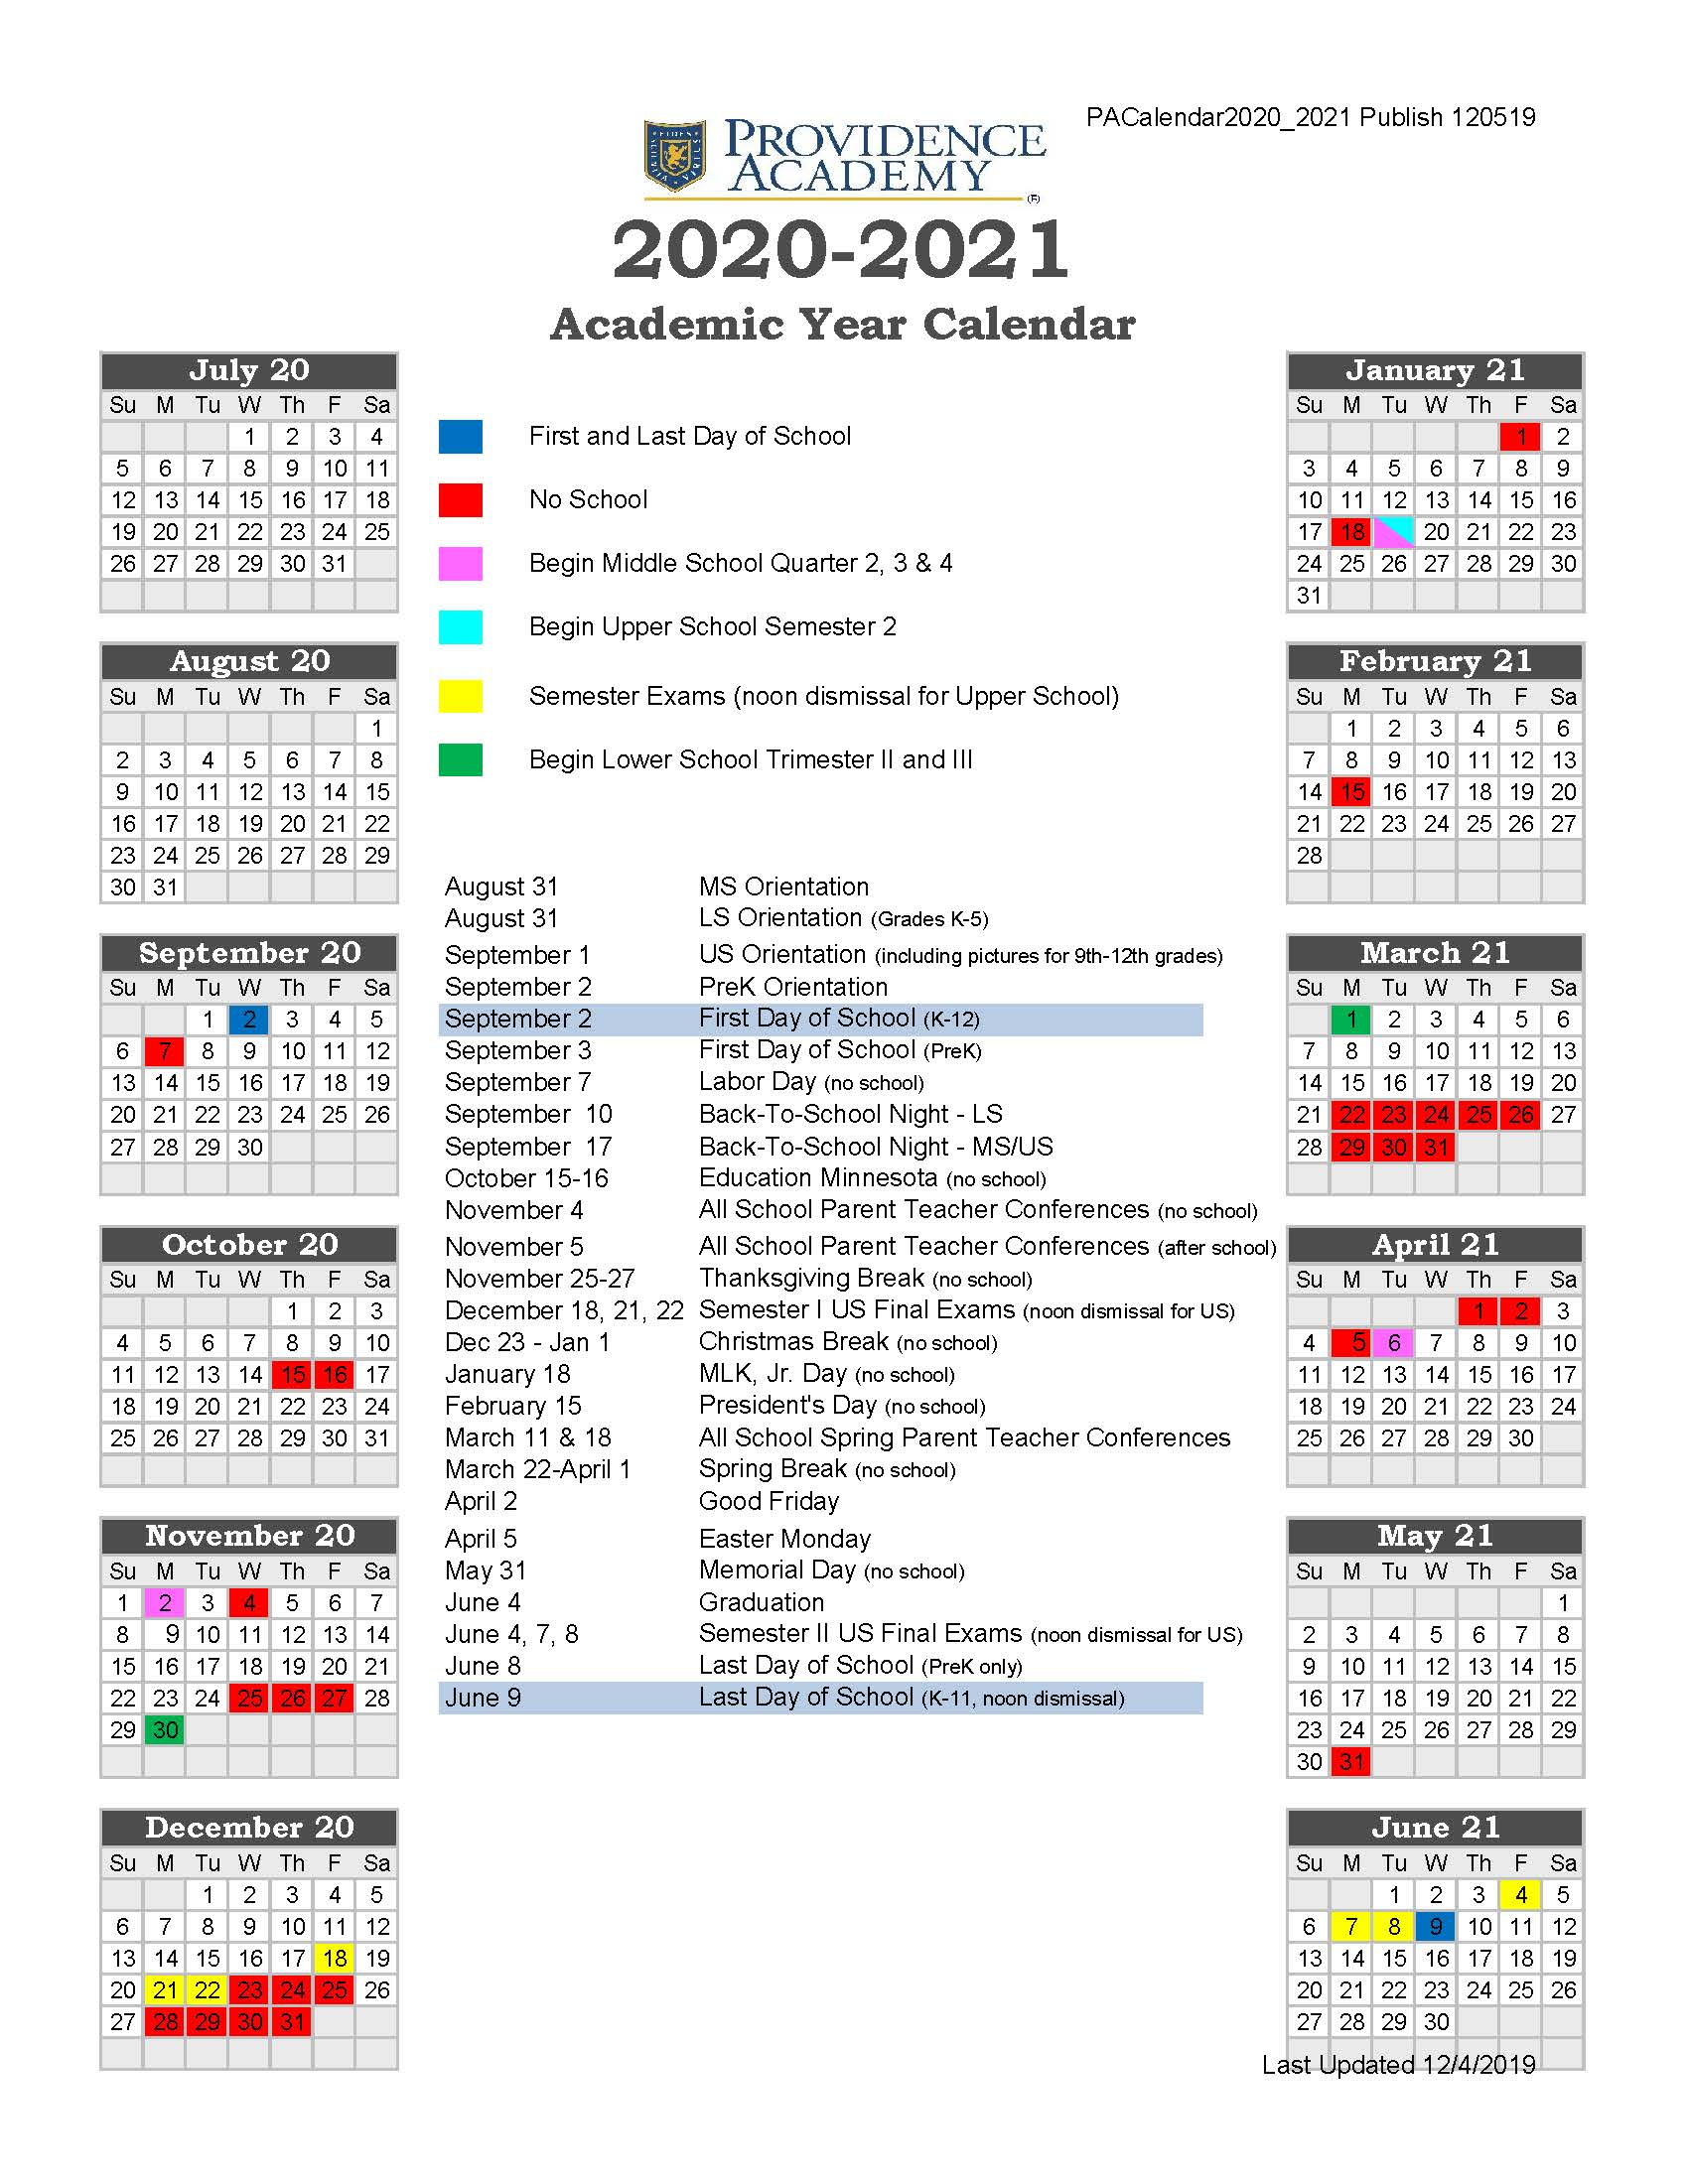 19-20_Providence-Academy-Academic-Calendar-2020-2021 intended for U Of M Twin Cities 2020-2021 Calendar